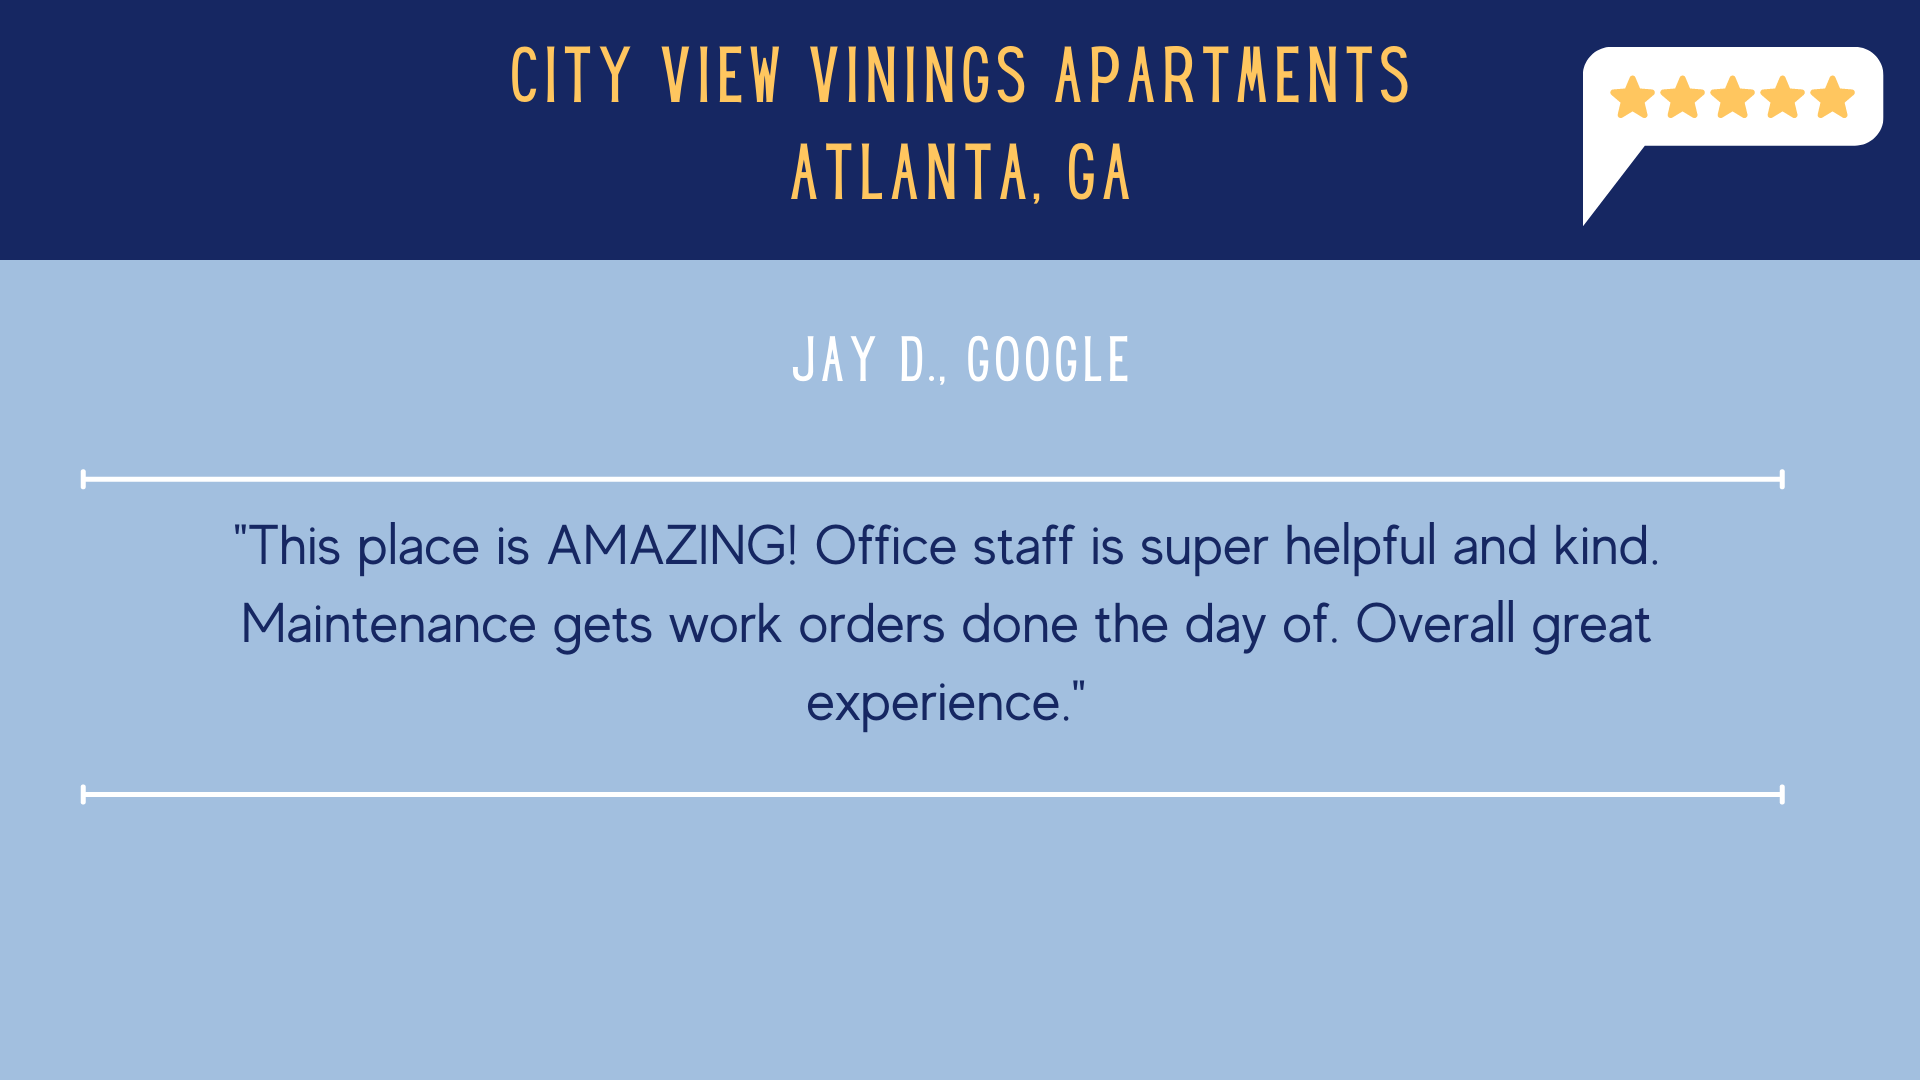 City View Vinings 5 Star Review